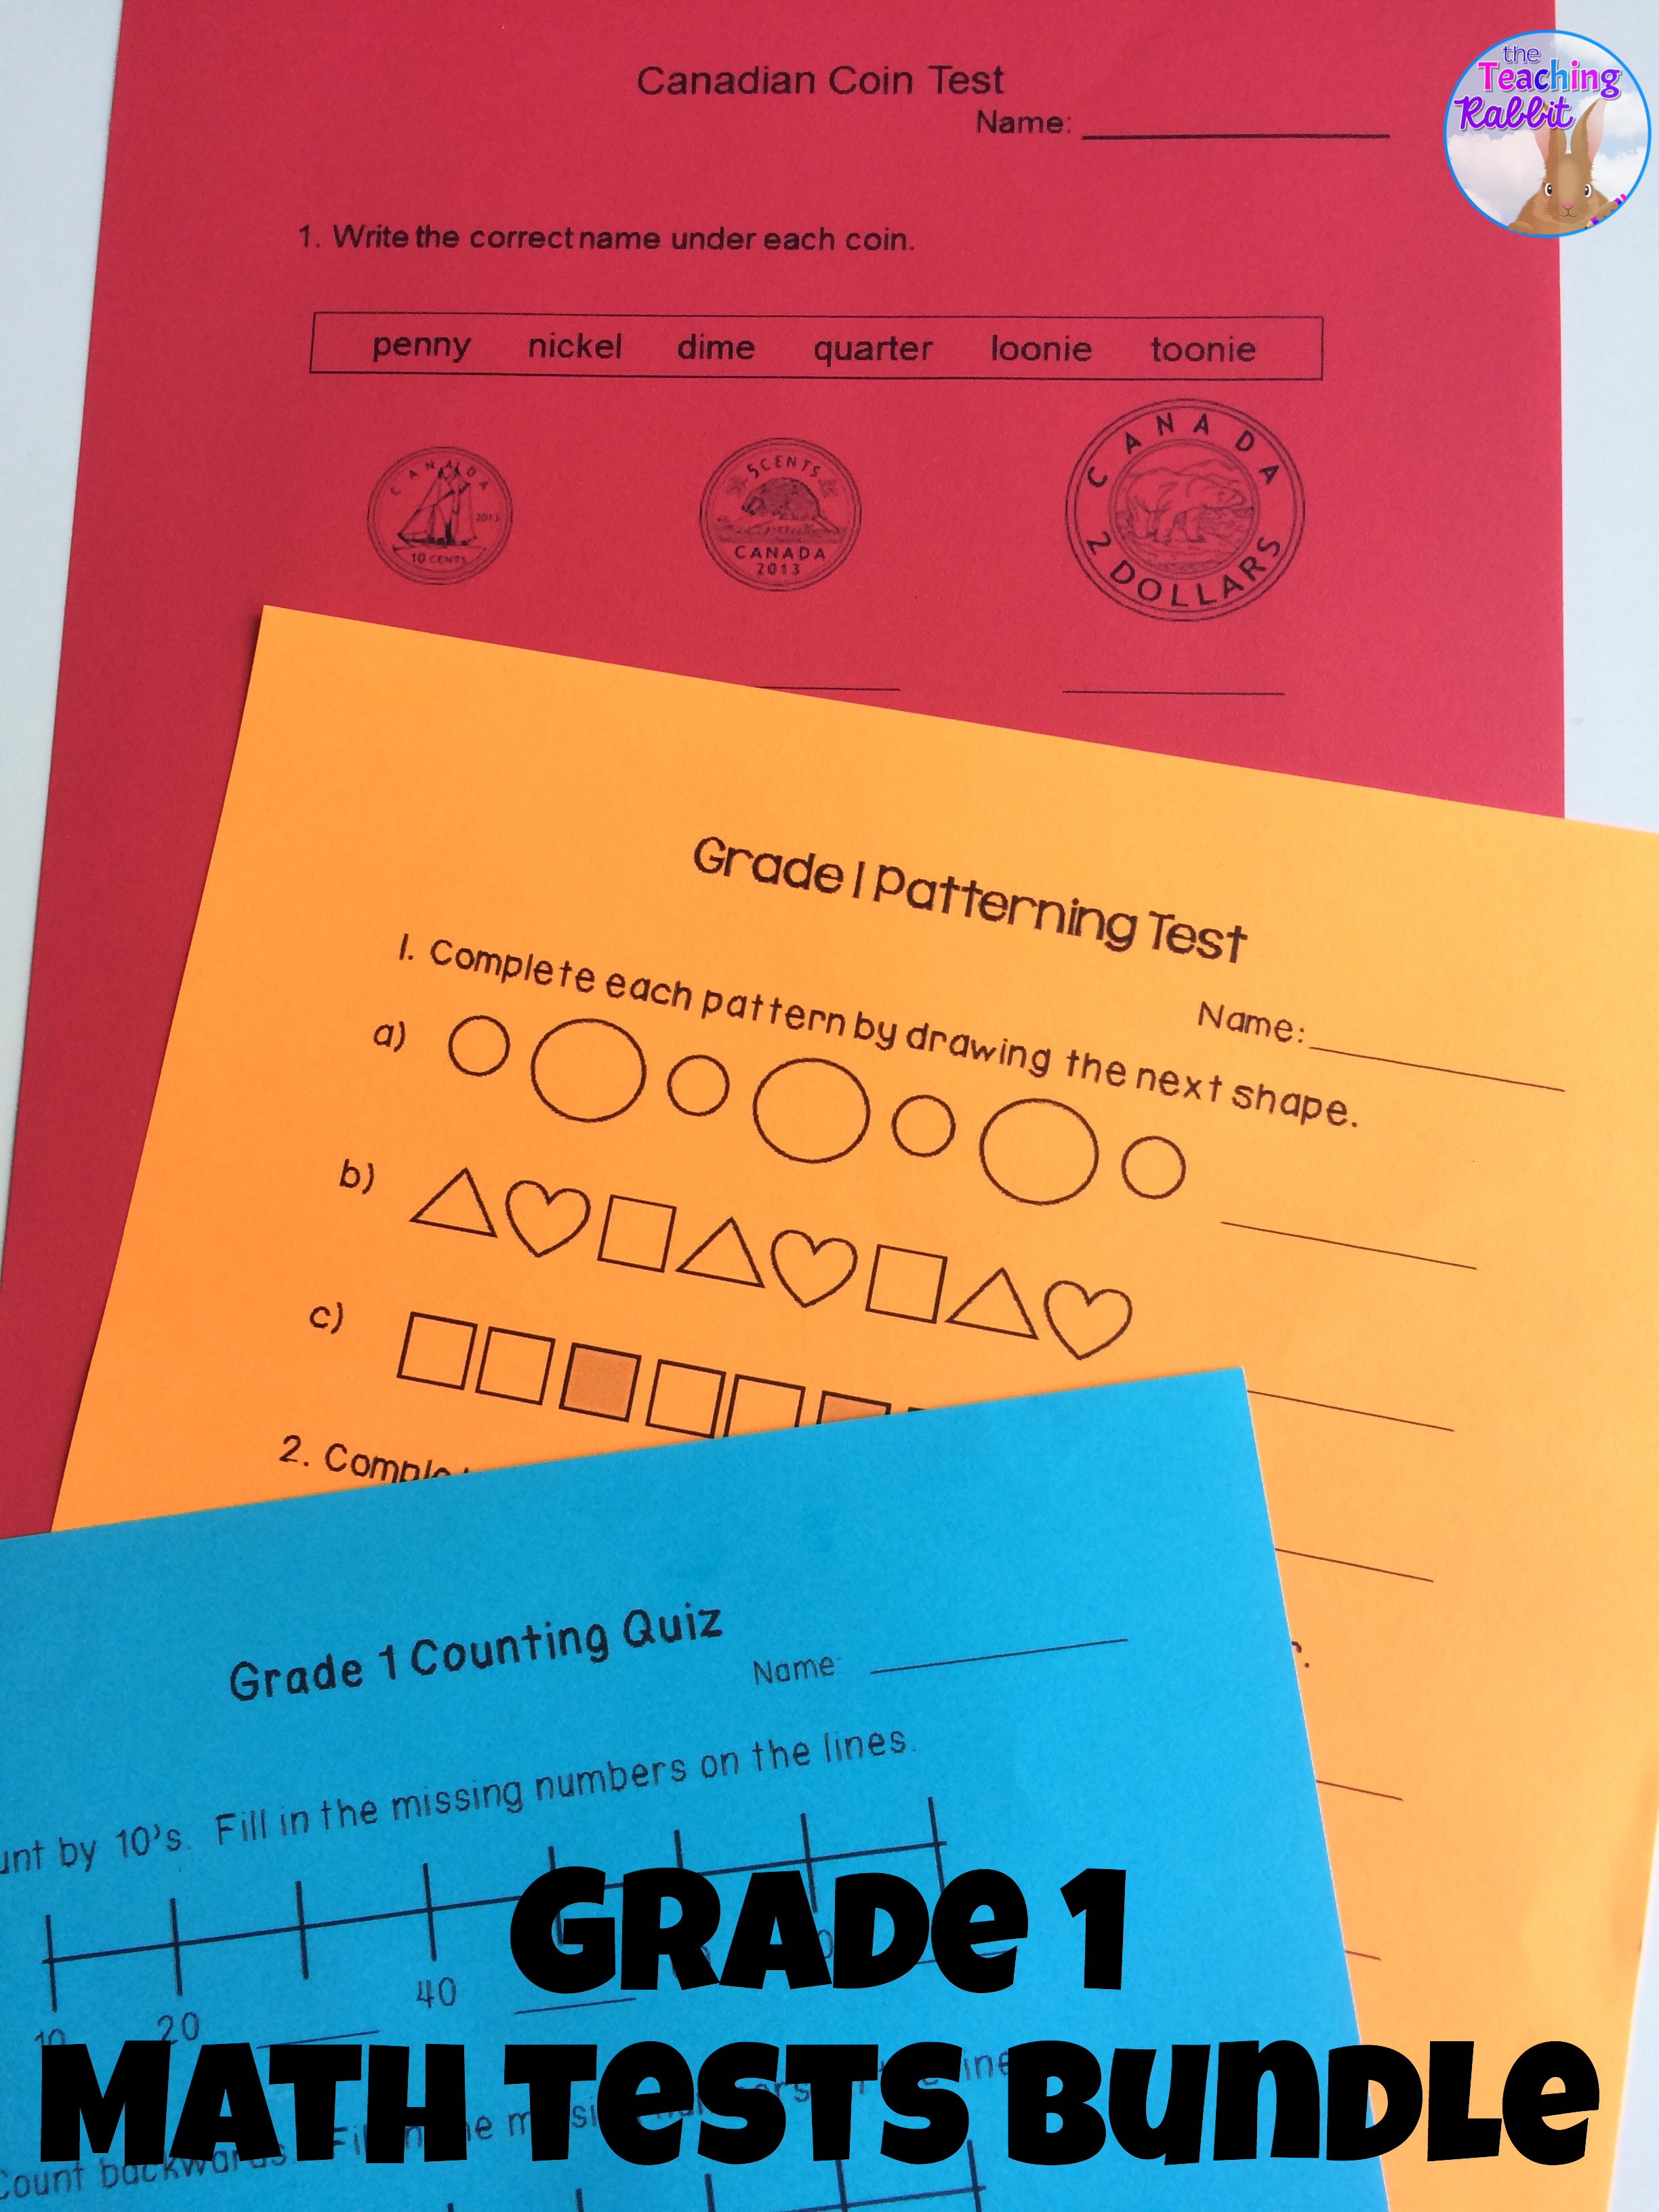 Grade 1 Math Tests Bundle (Based on Ontario Curriculum) | Pinterest ...